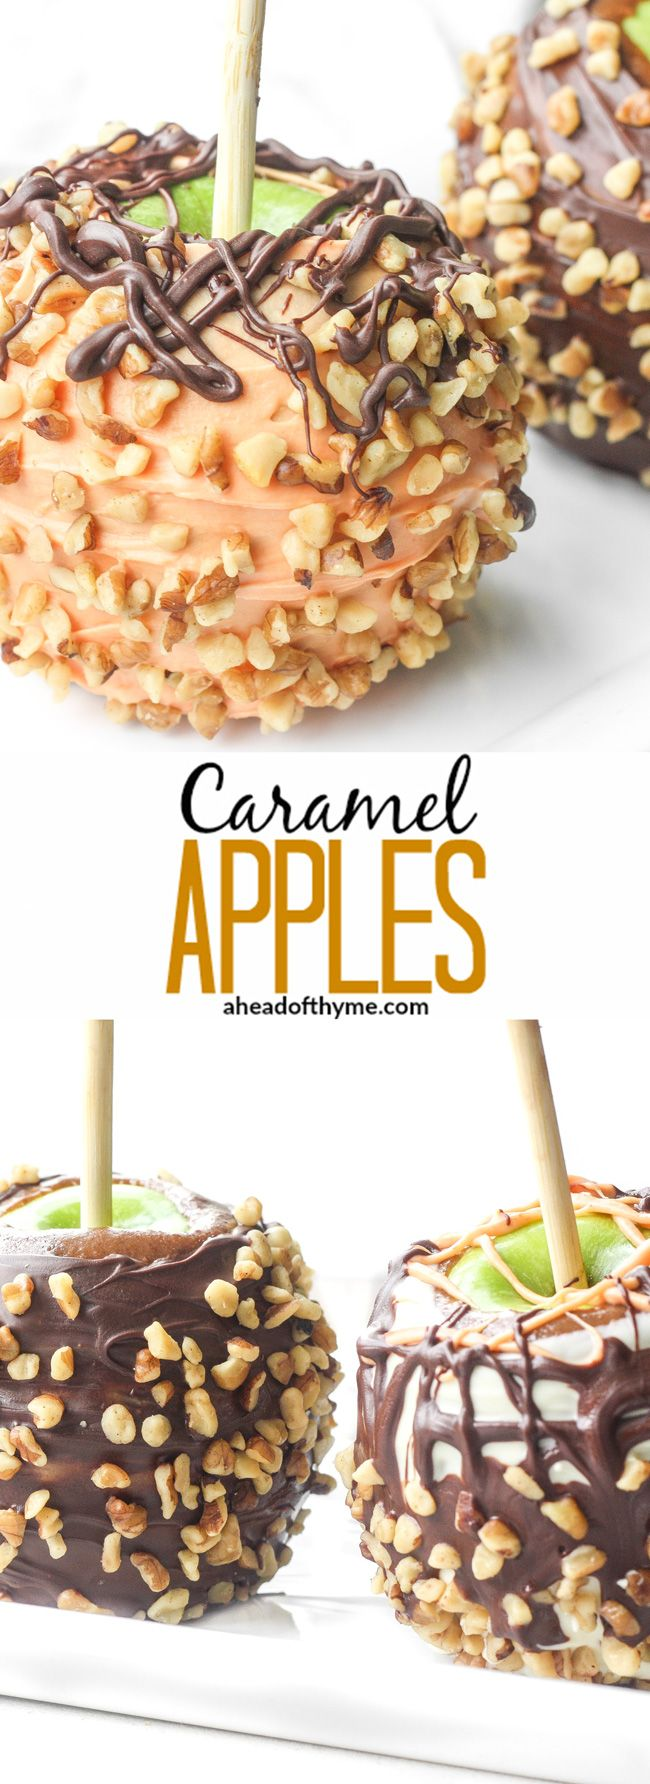 Made with real belgian chocolate this fun chocolate animals make - Nothing Says Halloween Better Than A Classic And Traditional Fall Treat Learn How To Make Your Own Homemade Caramel Apples Today